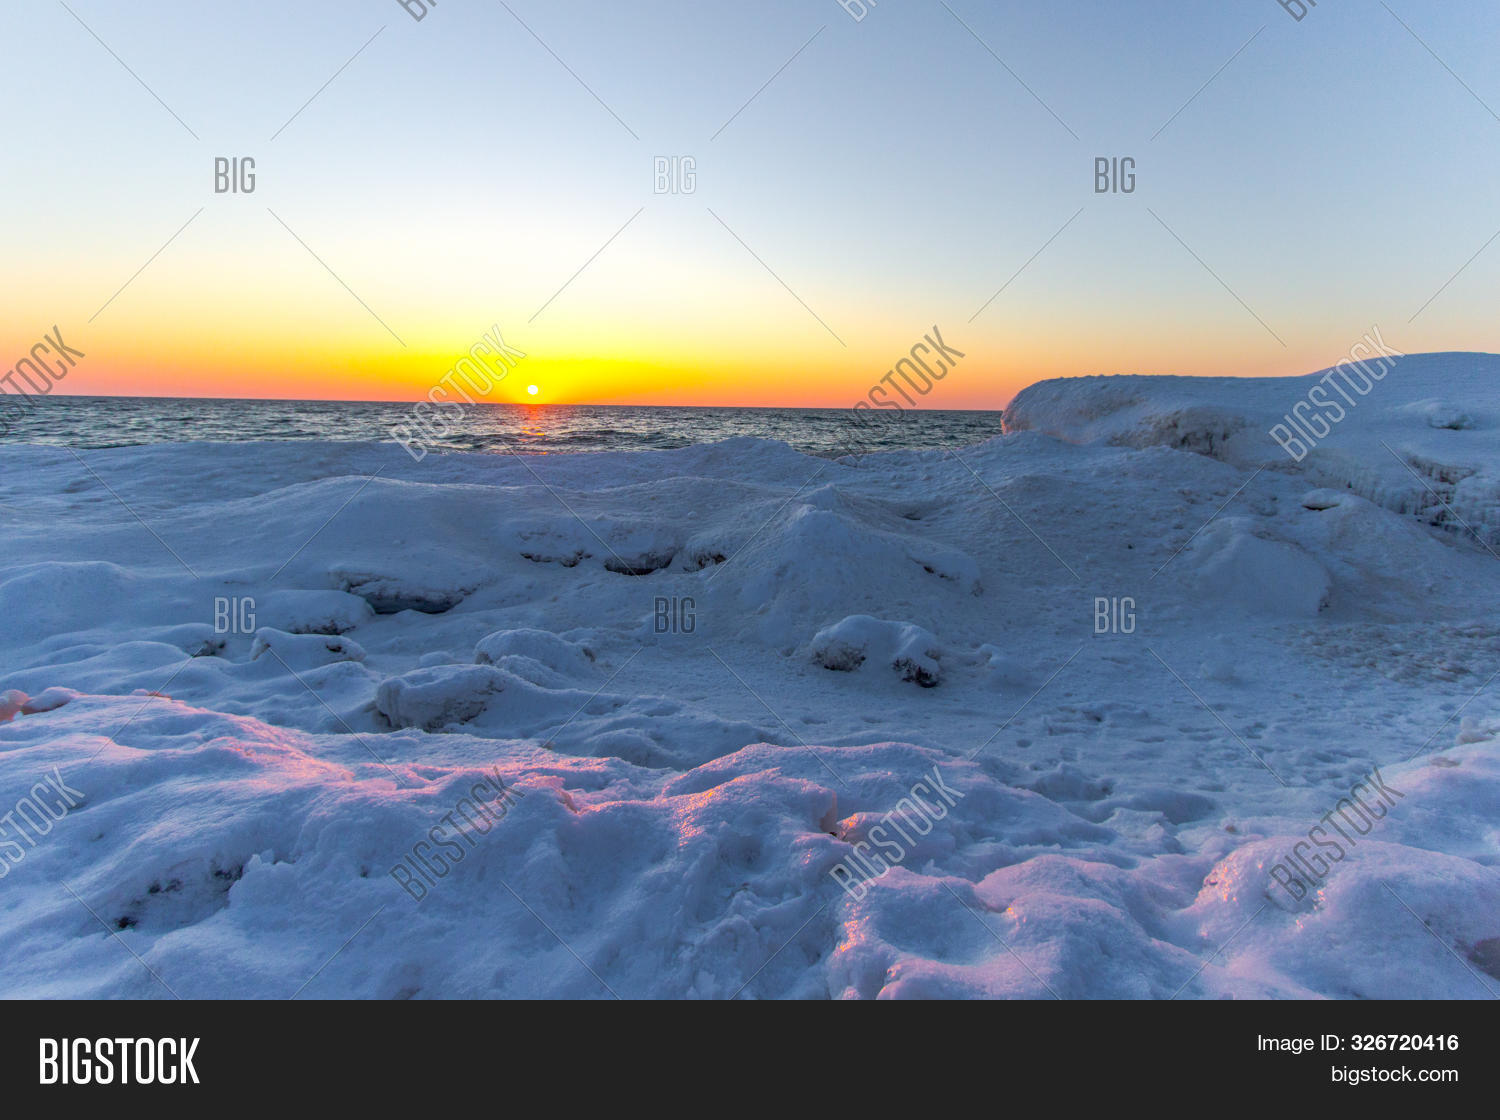 Bear,Dunes,Great,Michigan,Sleeping,bank,beach,cloudscape,coast,coastline,cold,dawn,dramatic,dusk,freezing,frozen,glacier,horizon,ice,lake,lakeshore,landscape,morning,natural,nature,no,ocean,outdoor,panorama,people,remote,scenery,scenic,sea,seascape,seaside,season,sky,snow,snowy,sunrise,sunset,twilight,view,water,winter,wintertime,wintry